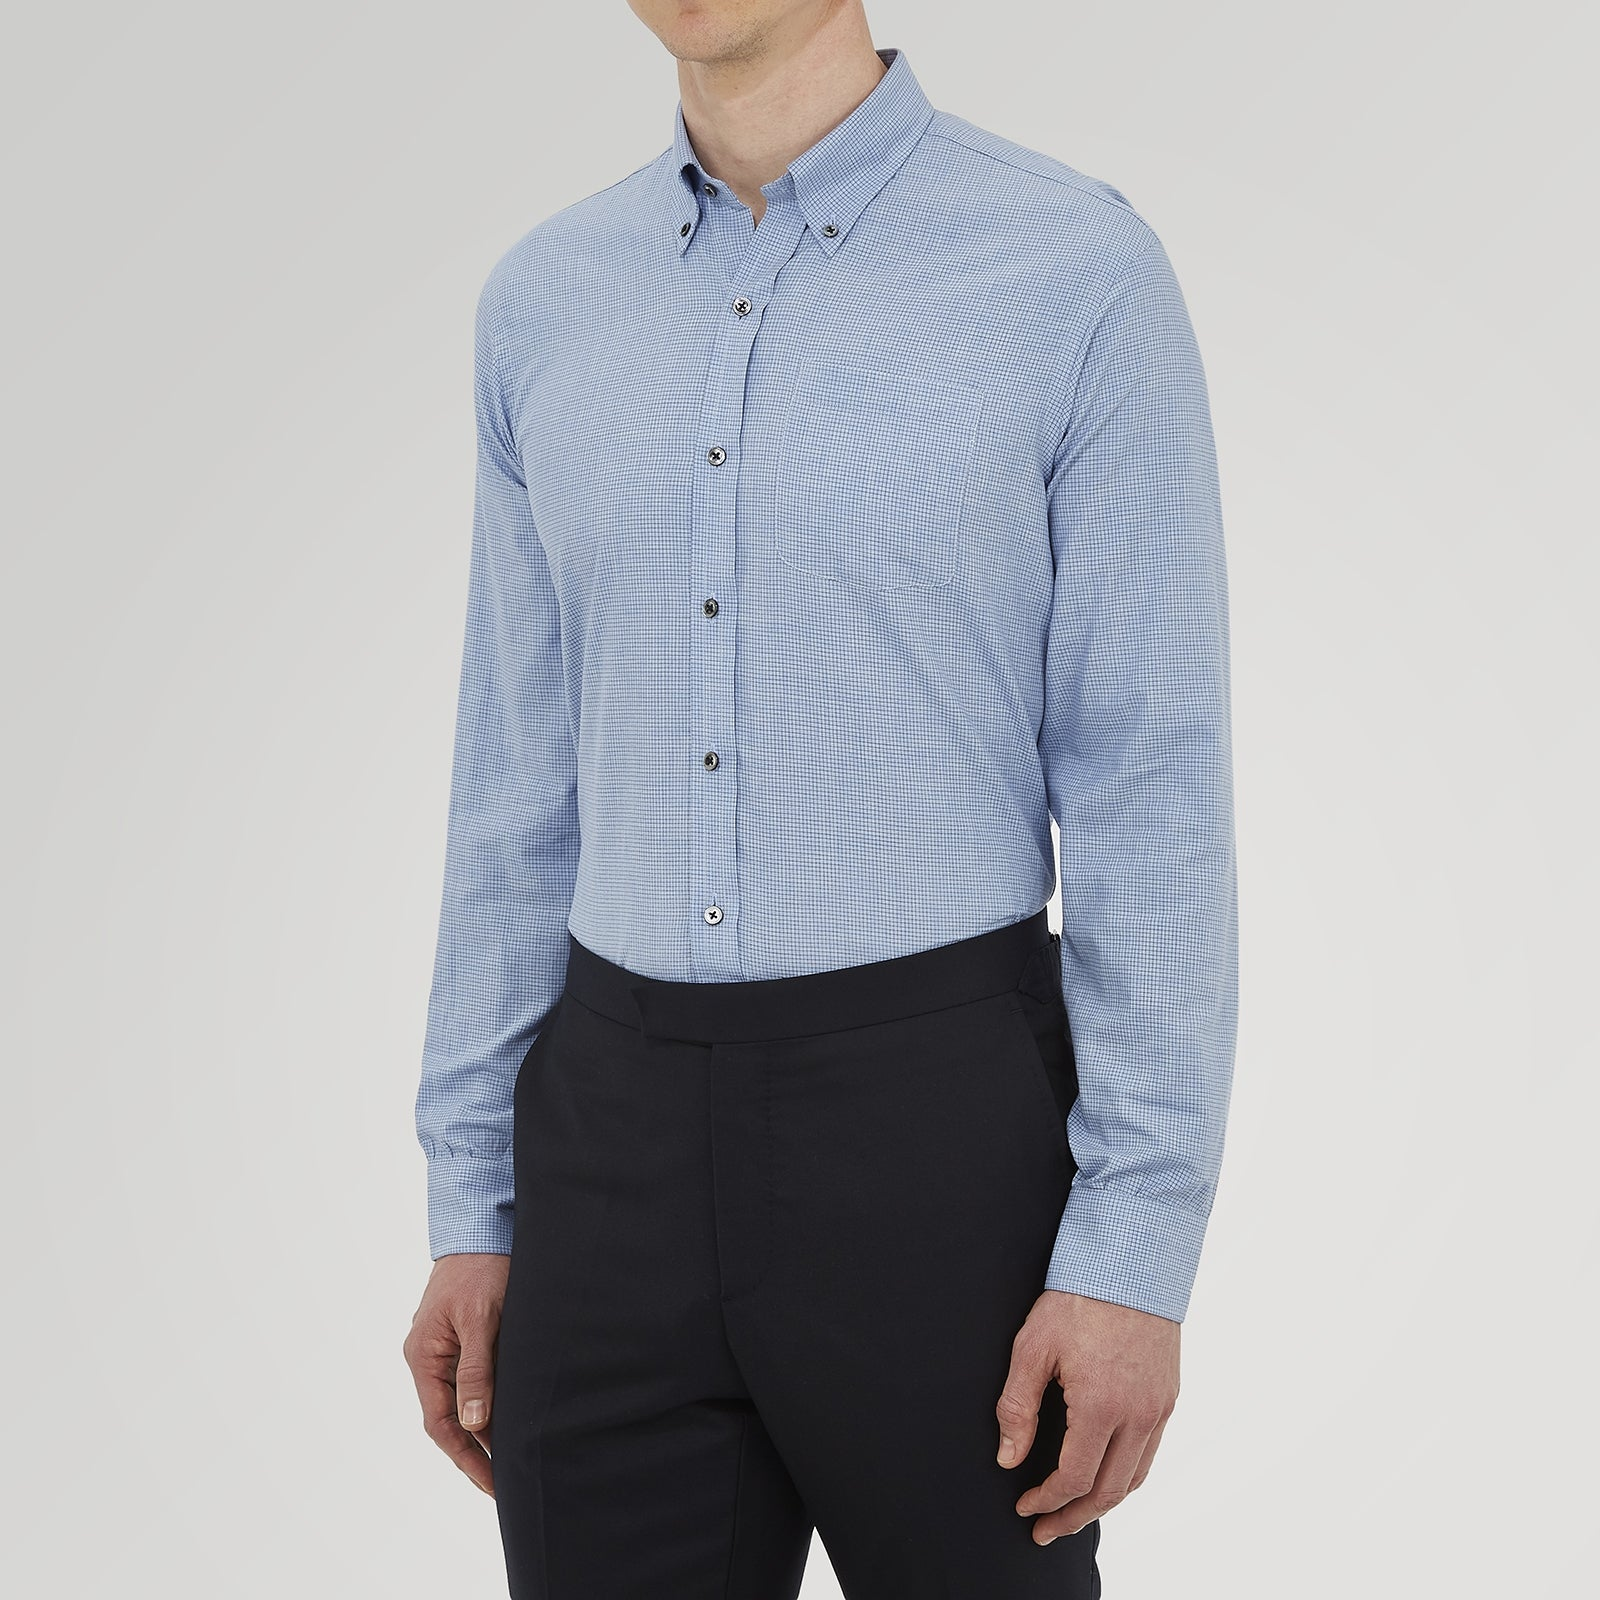 Weekend Fit Blue Cashmerello Light Shirt with Dorset Collar and 1-Button Cuffs